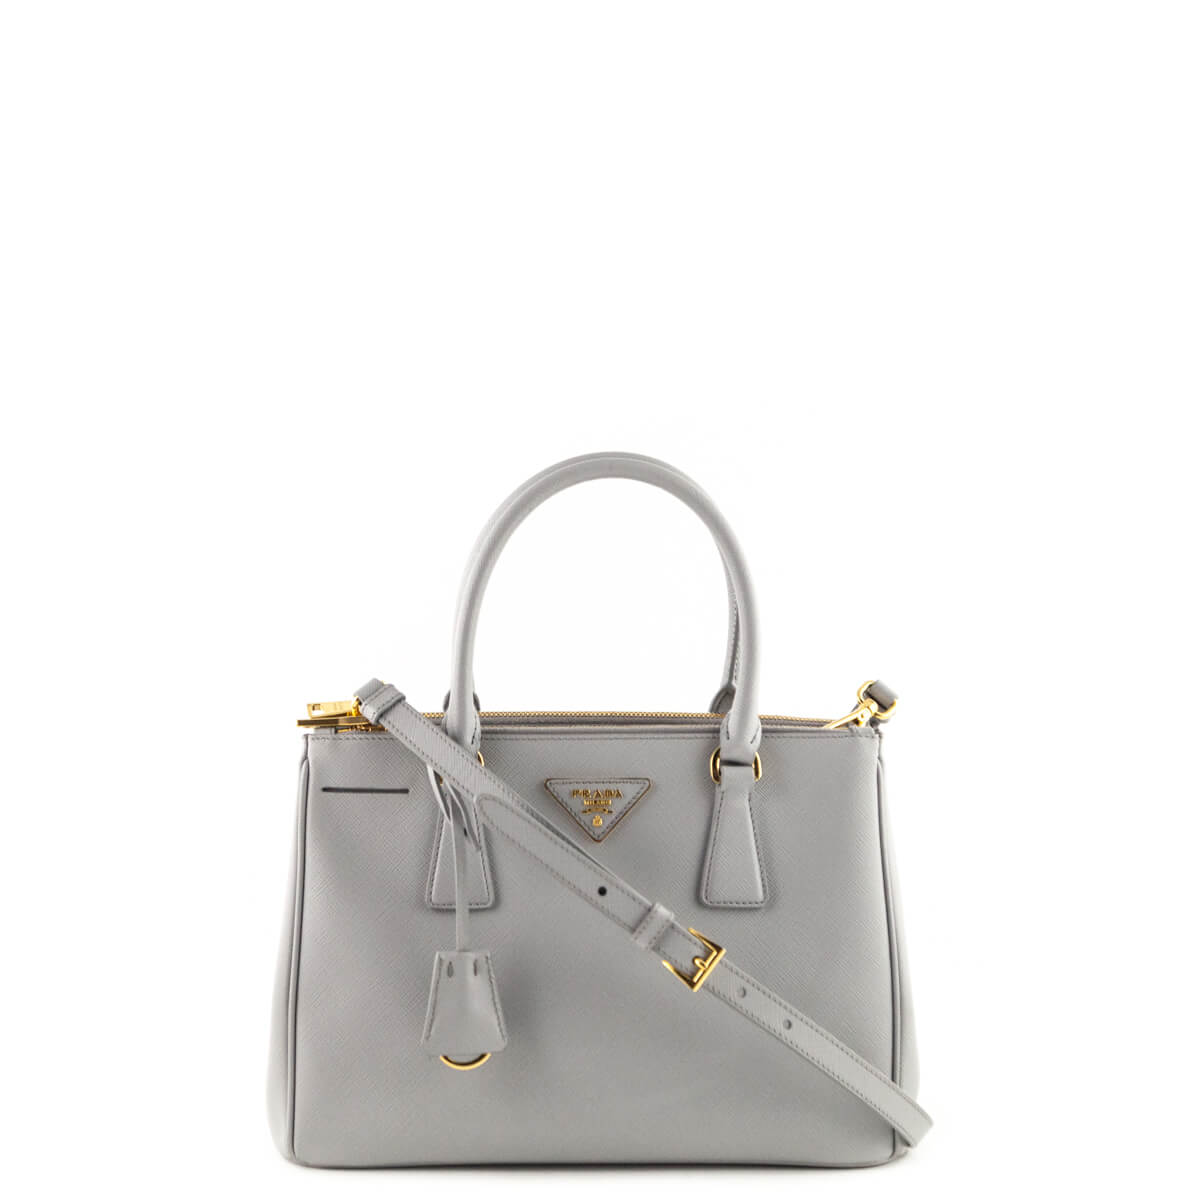 257de32acc015c Prada Astral Gray Saffiano Small Galleria Double Zip Lux Tote - LOVE that  BAG - Preowned ...